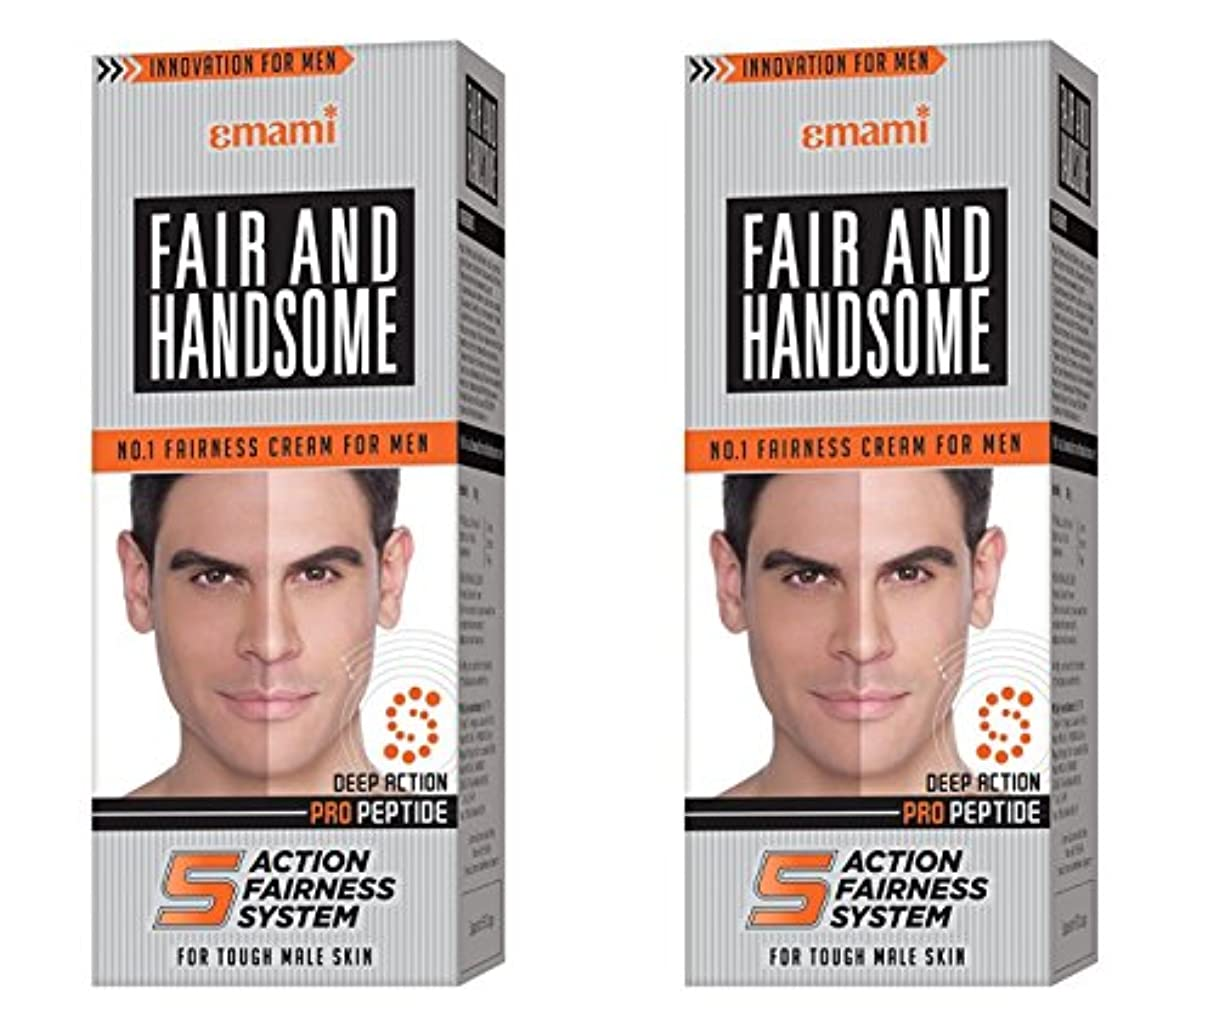 援助する求める杭Fair and Handsome Fairness Cream for Men, 60gm (Pack of 2)